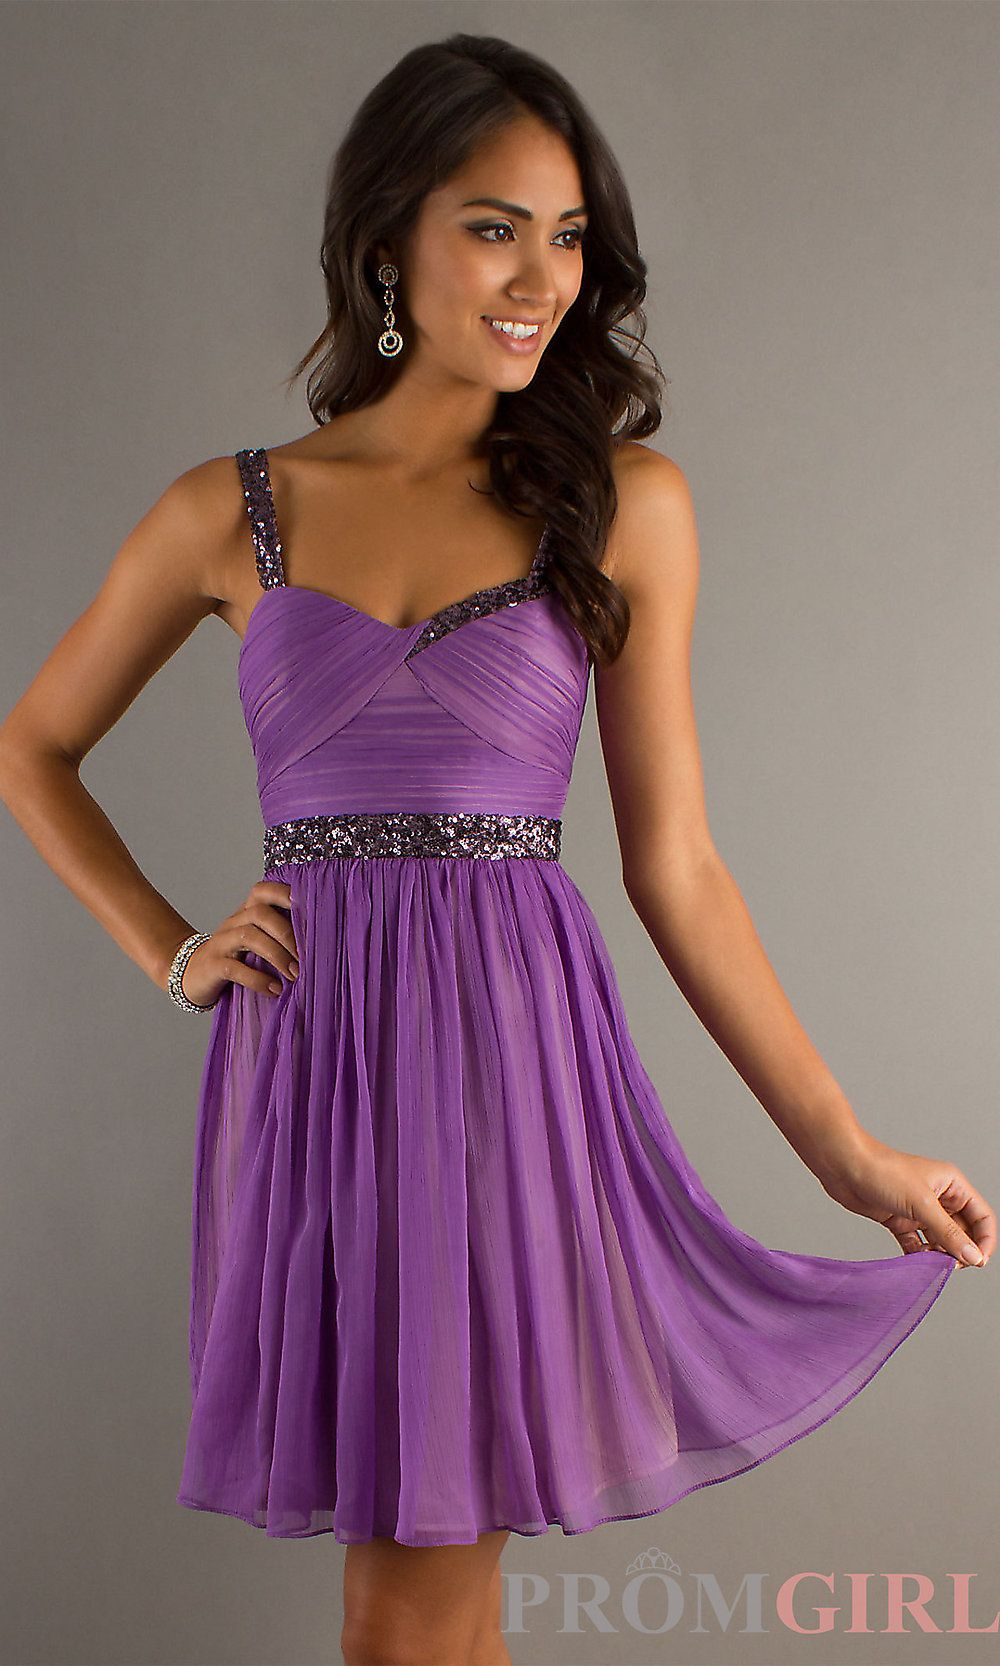 30 Semi Formal Dresses For Women | Formal gowns, Bling belts and ...